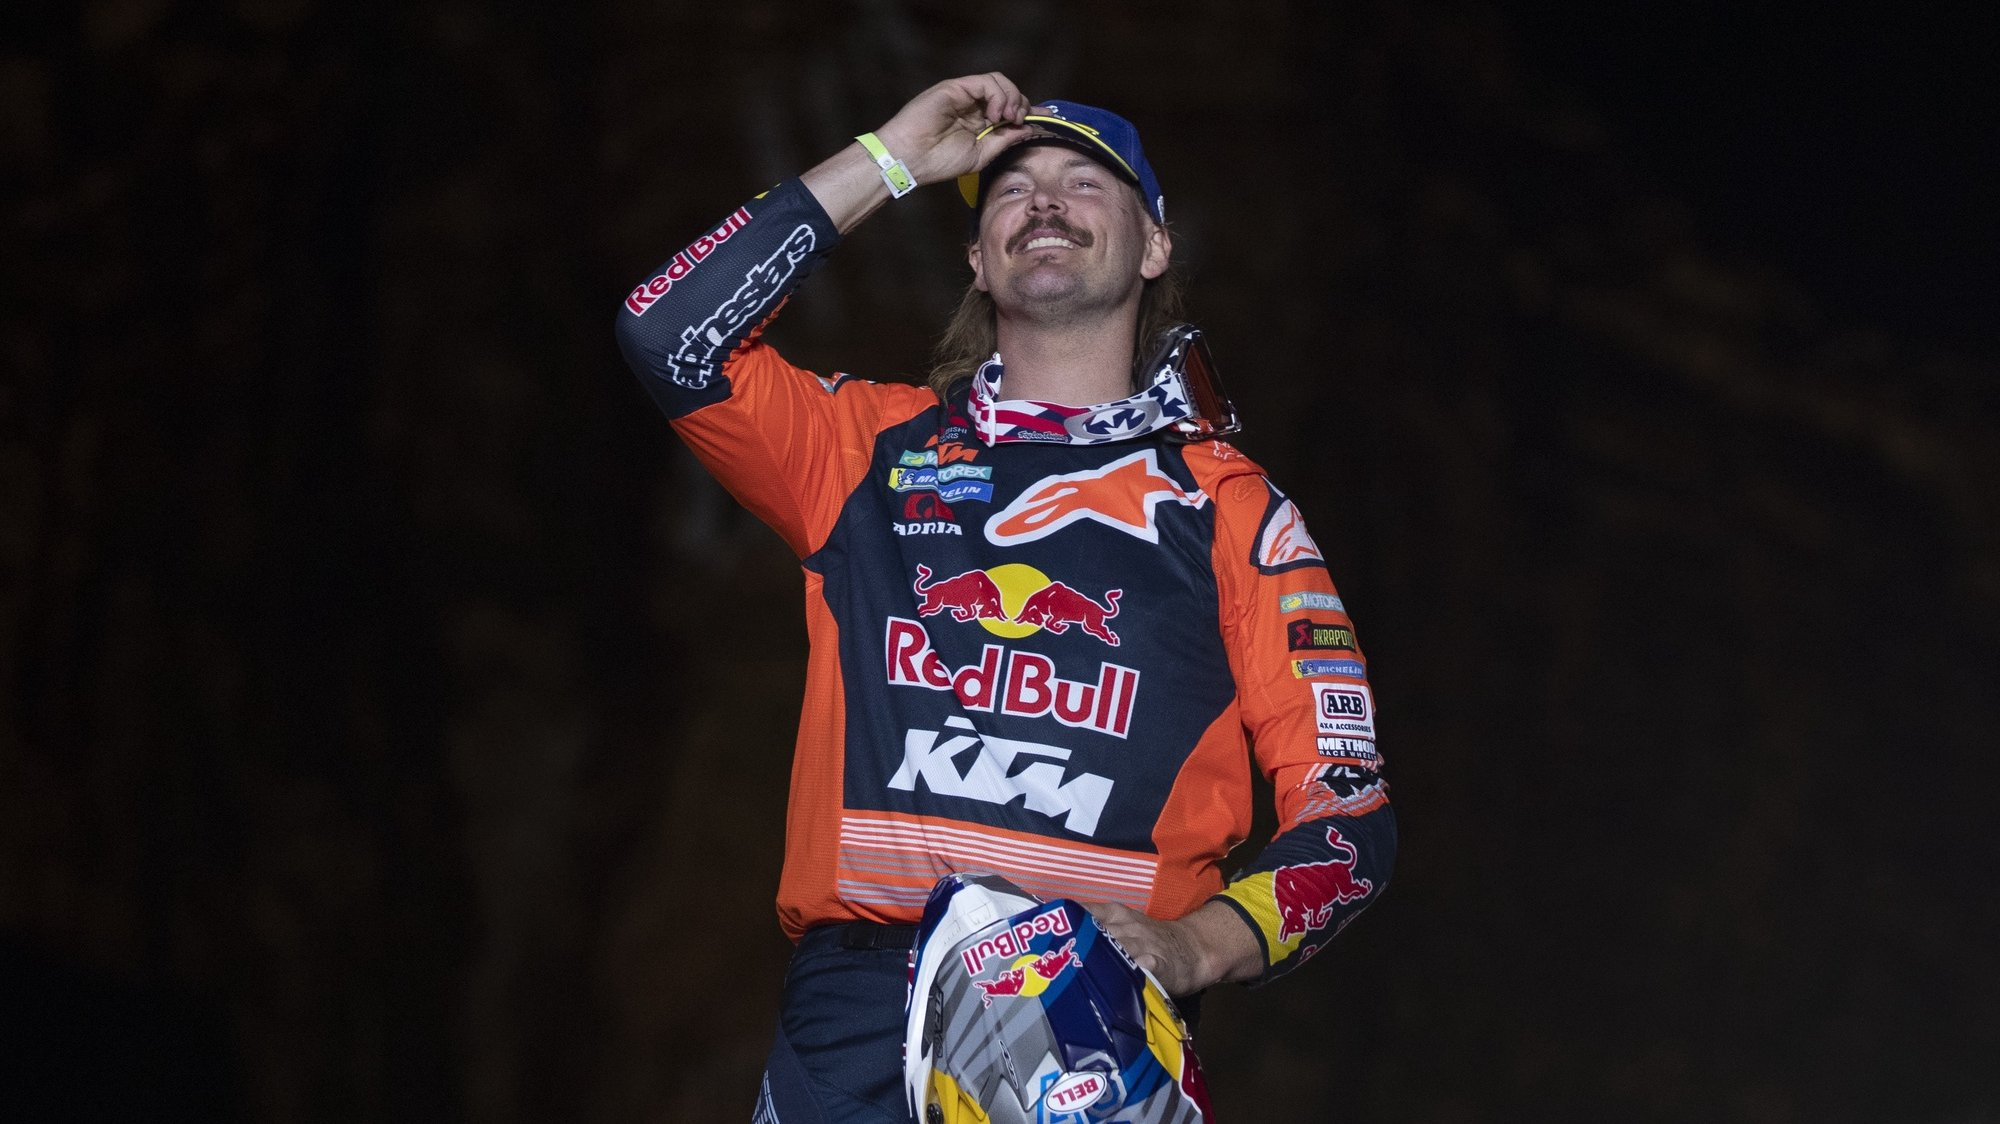 epa08137040 Australian Toby Price celebrates his third place  in the bike category after the last stage of the Rally Dakar 2020 in Qiddiya, Saudi Arabia, 17 January 2020.  EPA/ANDRE PAIN